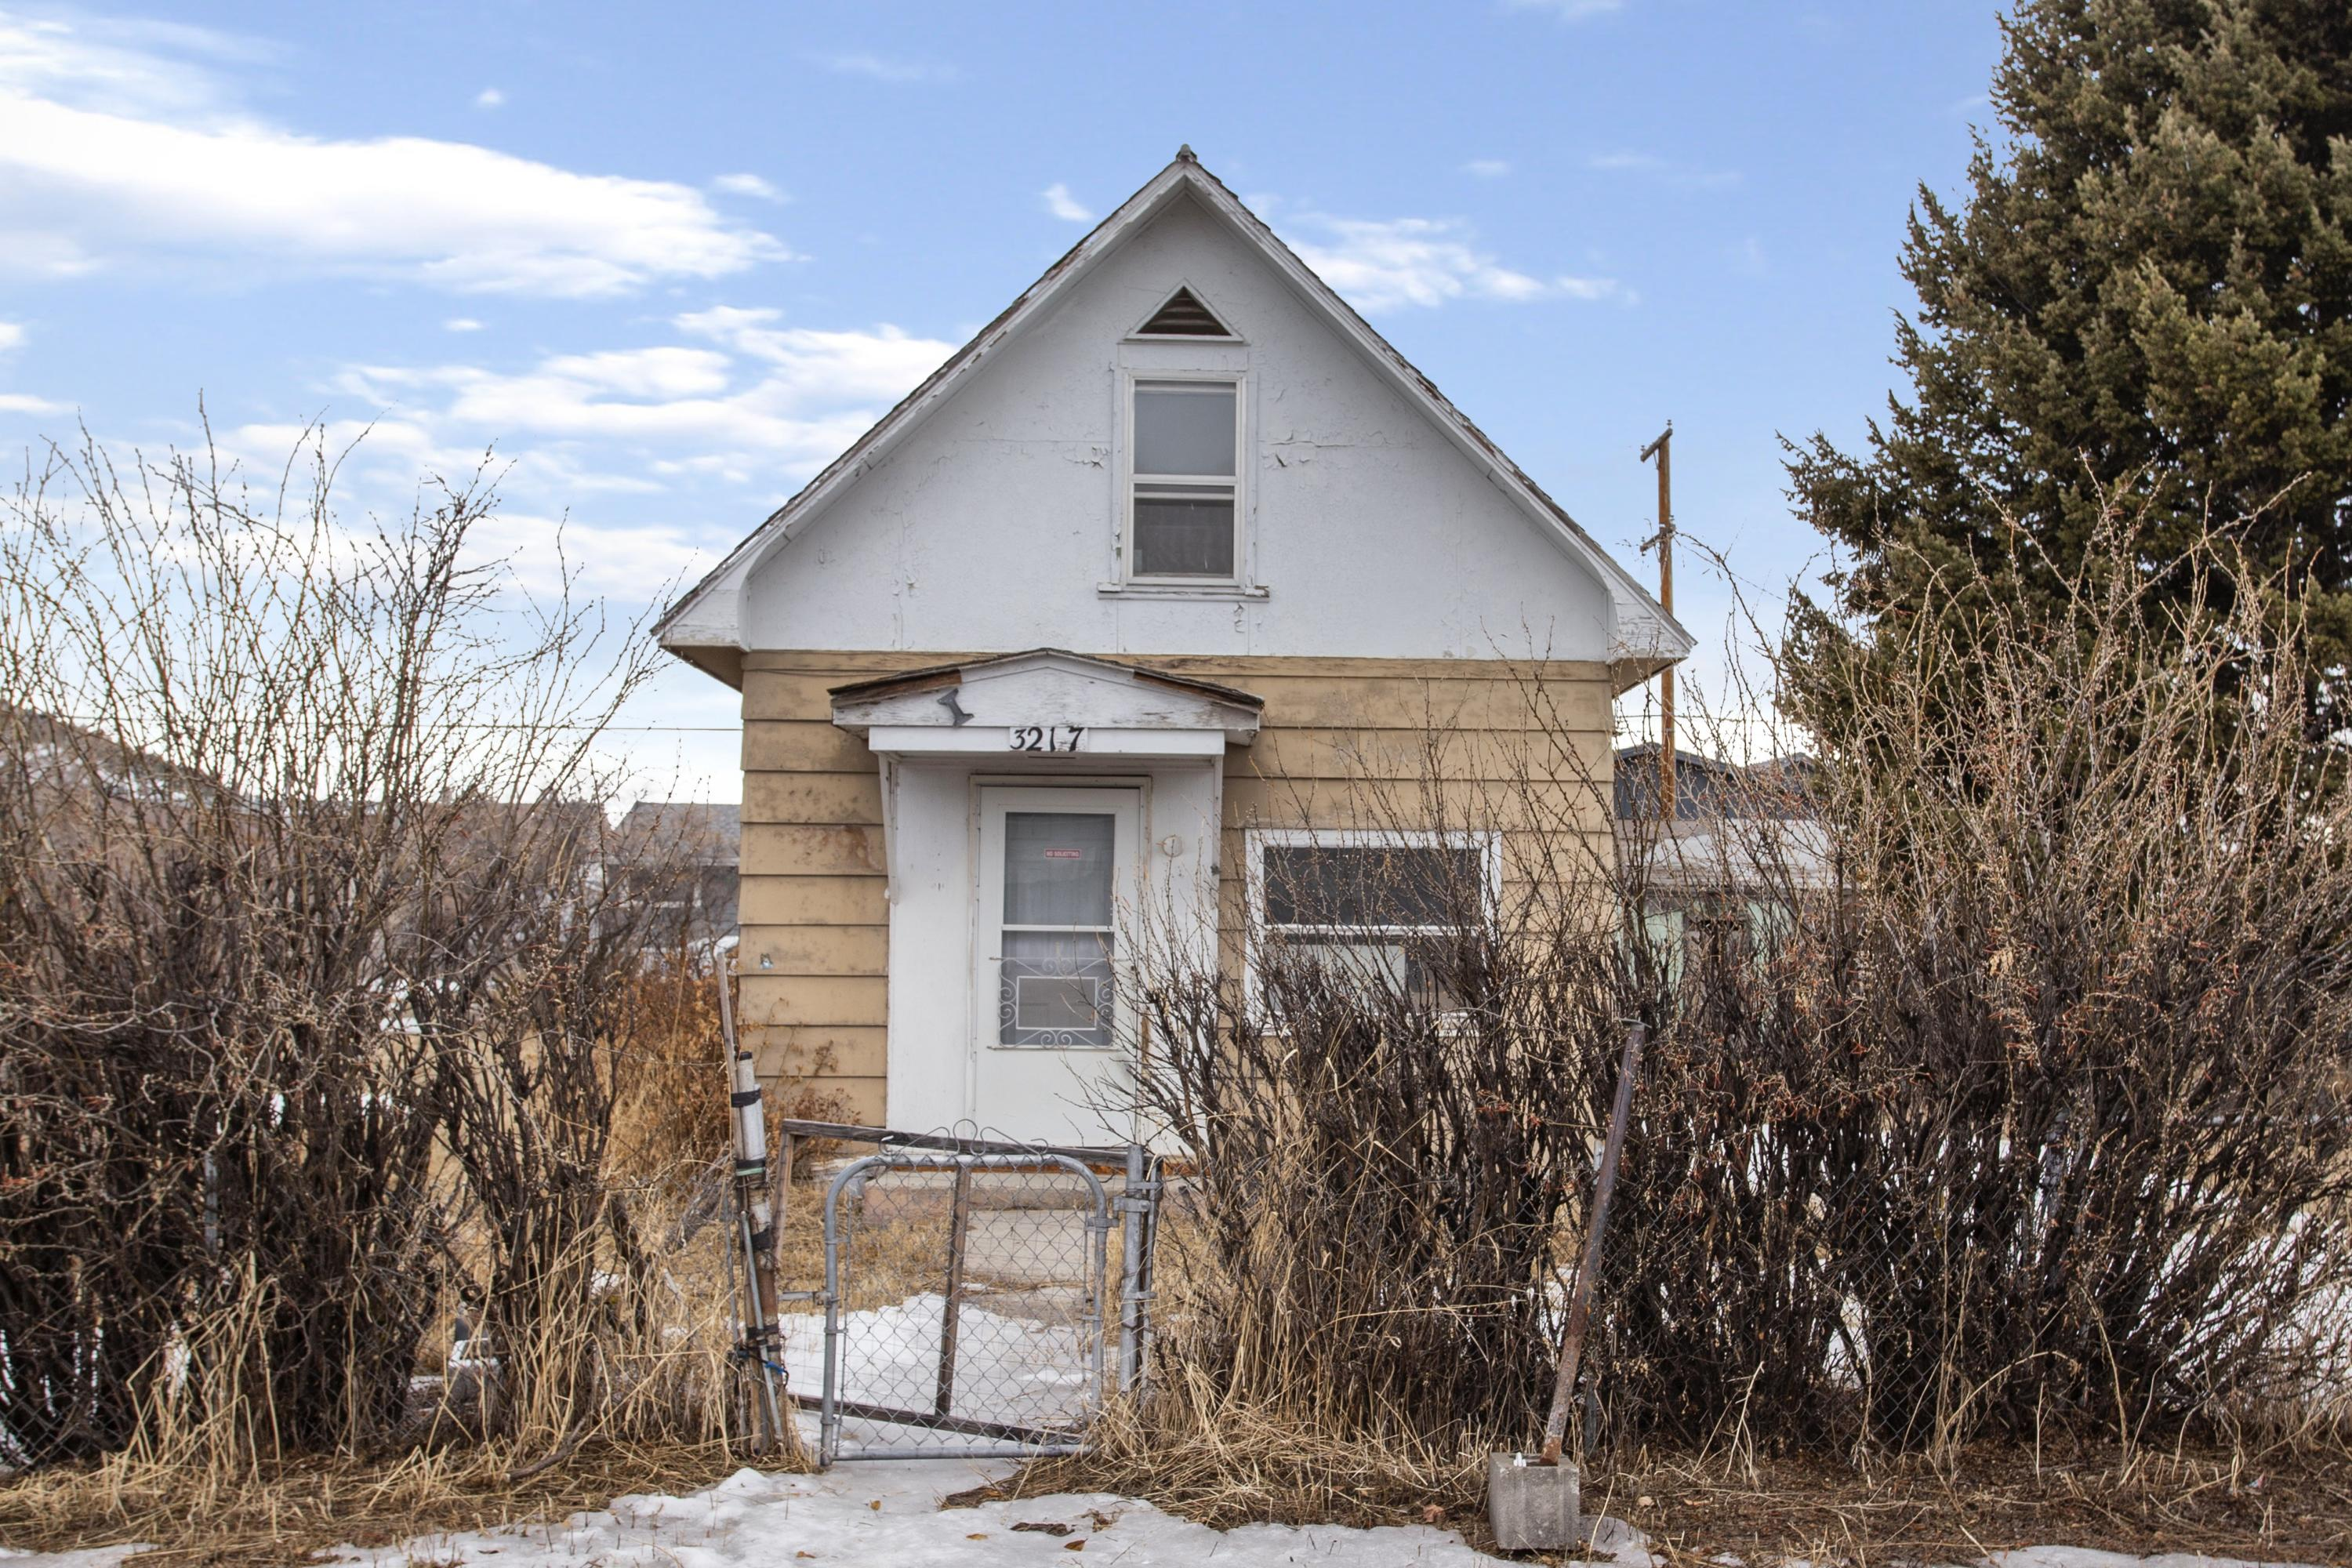 Talk about an opportunity! Much of the hard stuff has been done on this 2 bedroom, 1 bathroom home on the flats of Butte. You won't have to worry about electrical-- there is a new panel and wiring in place. The flooring throughout is low-maintenance, waterproof vinyl plank. Interior walls have been insulated and freshly painted, and you'll stay cozy with a new Rinnai gas wall heater. Even the bathroom got an updated bath/shower insert. And there is still plenty of original charm remaining with a curved staircase, archway, and built-ins. Ready to make the kitchen your own? The cabinets and trim convey with the sale. And perhaps the best part? The house is located in the middle of a huge 10,000+ square foot fenced lot with mature trees, lilacs, and poppies.  Selling ''AS-IS''.